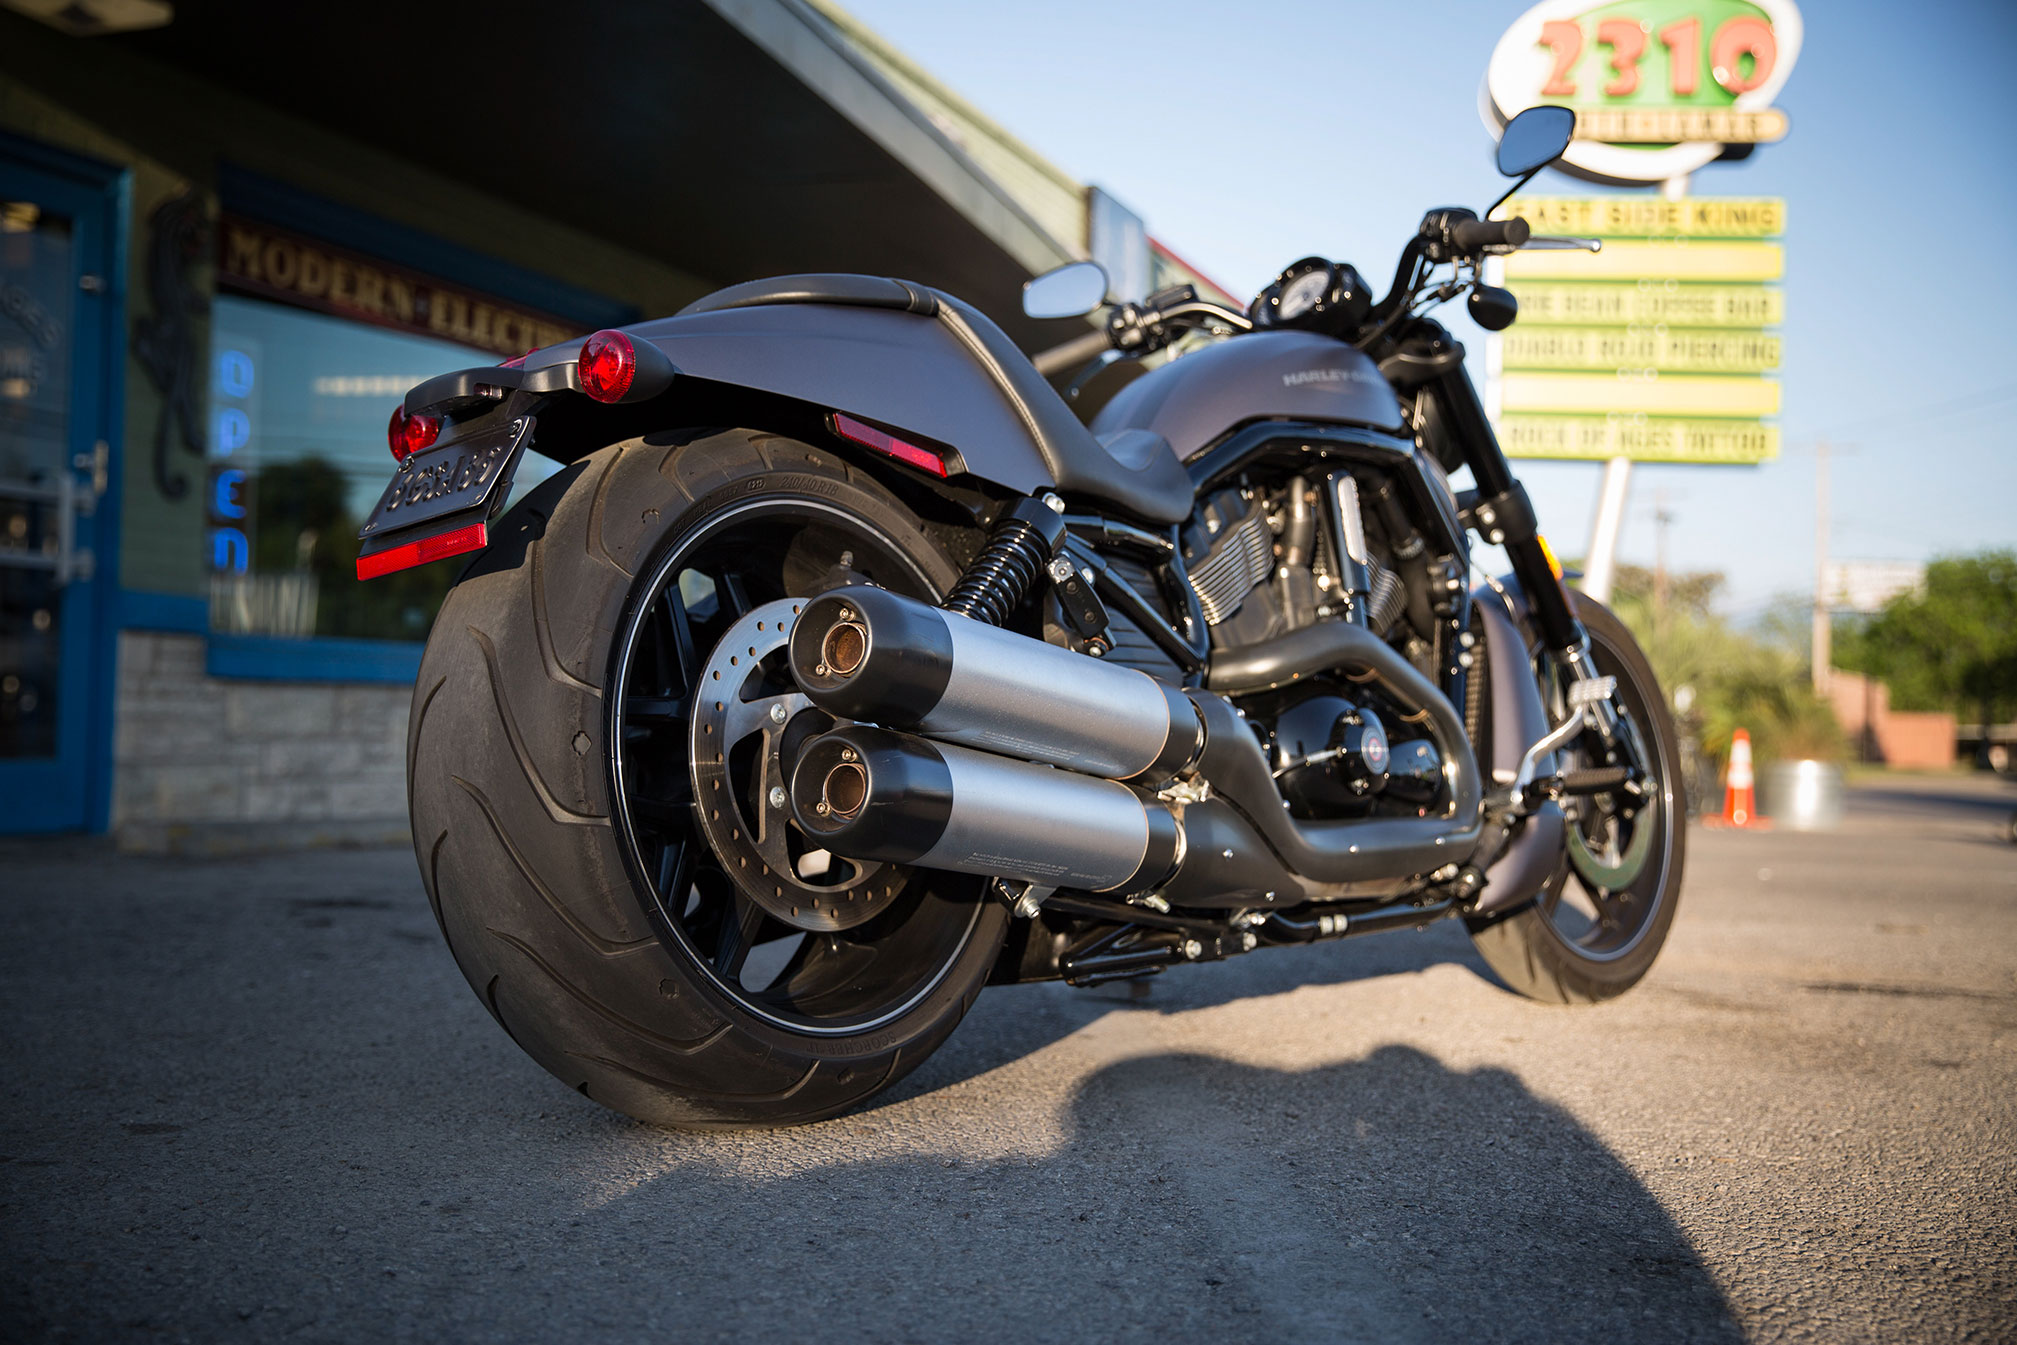 6 Harley Davidson Night Rod Hd Wallpapers Background Images Wallpaper Abyss